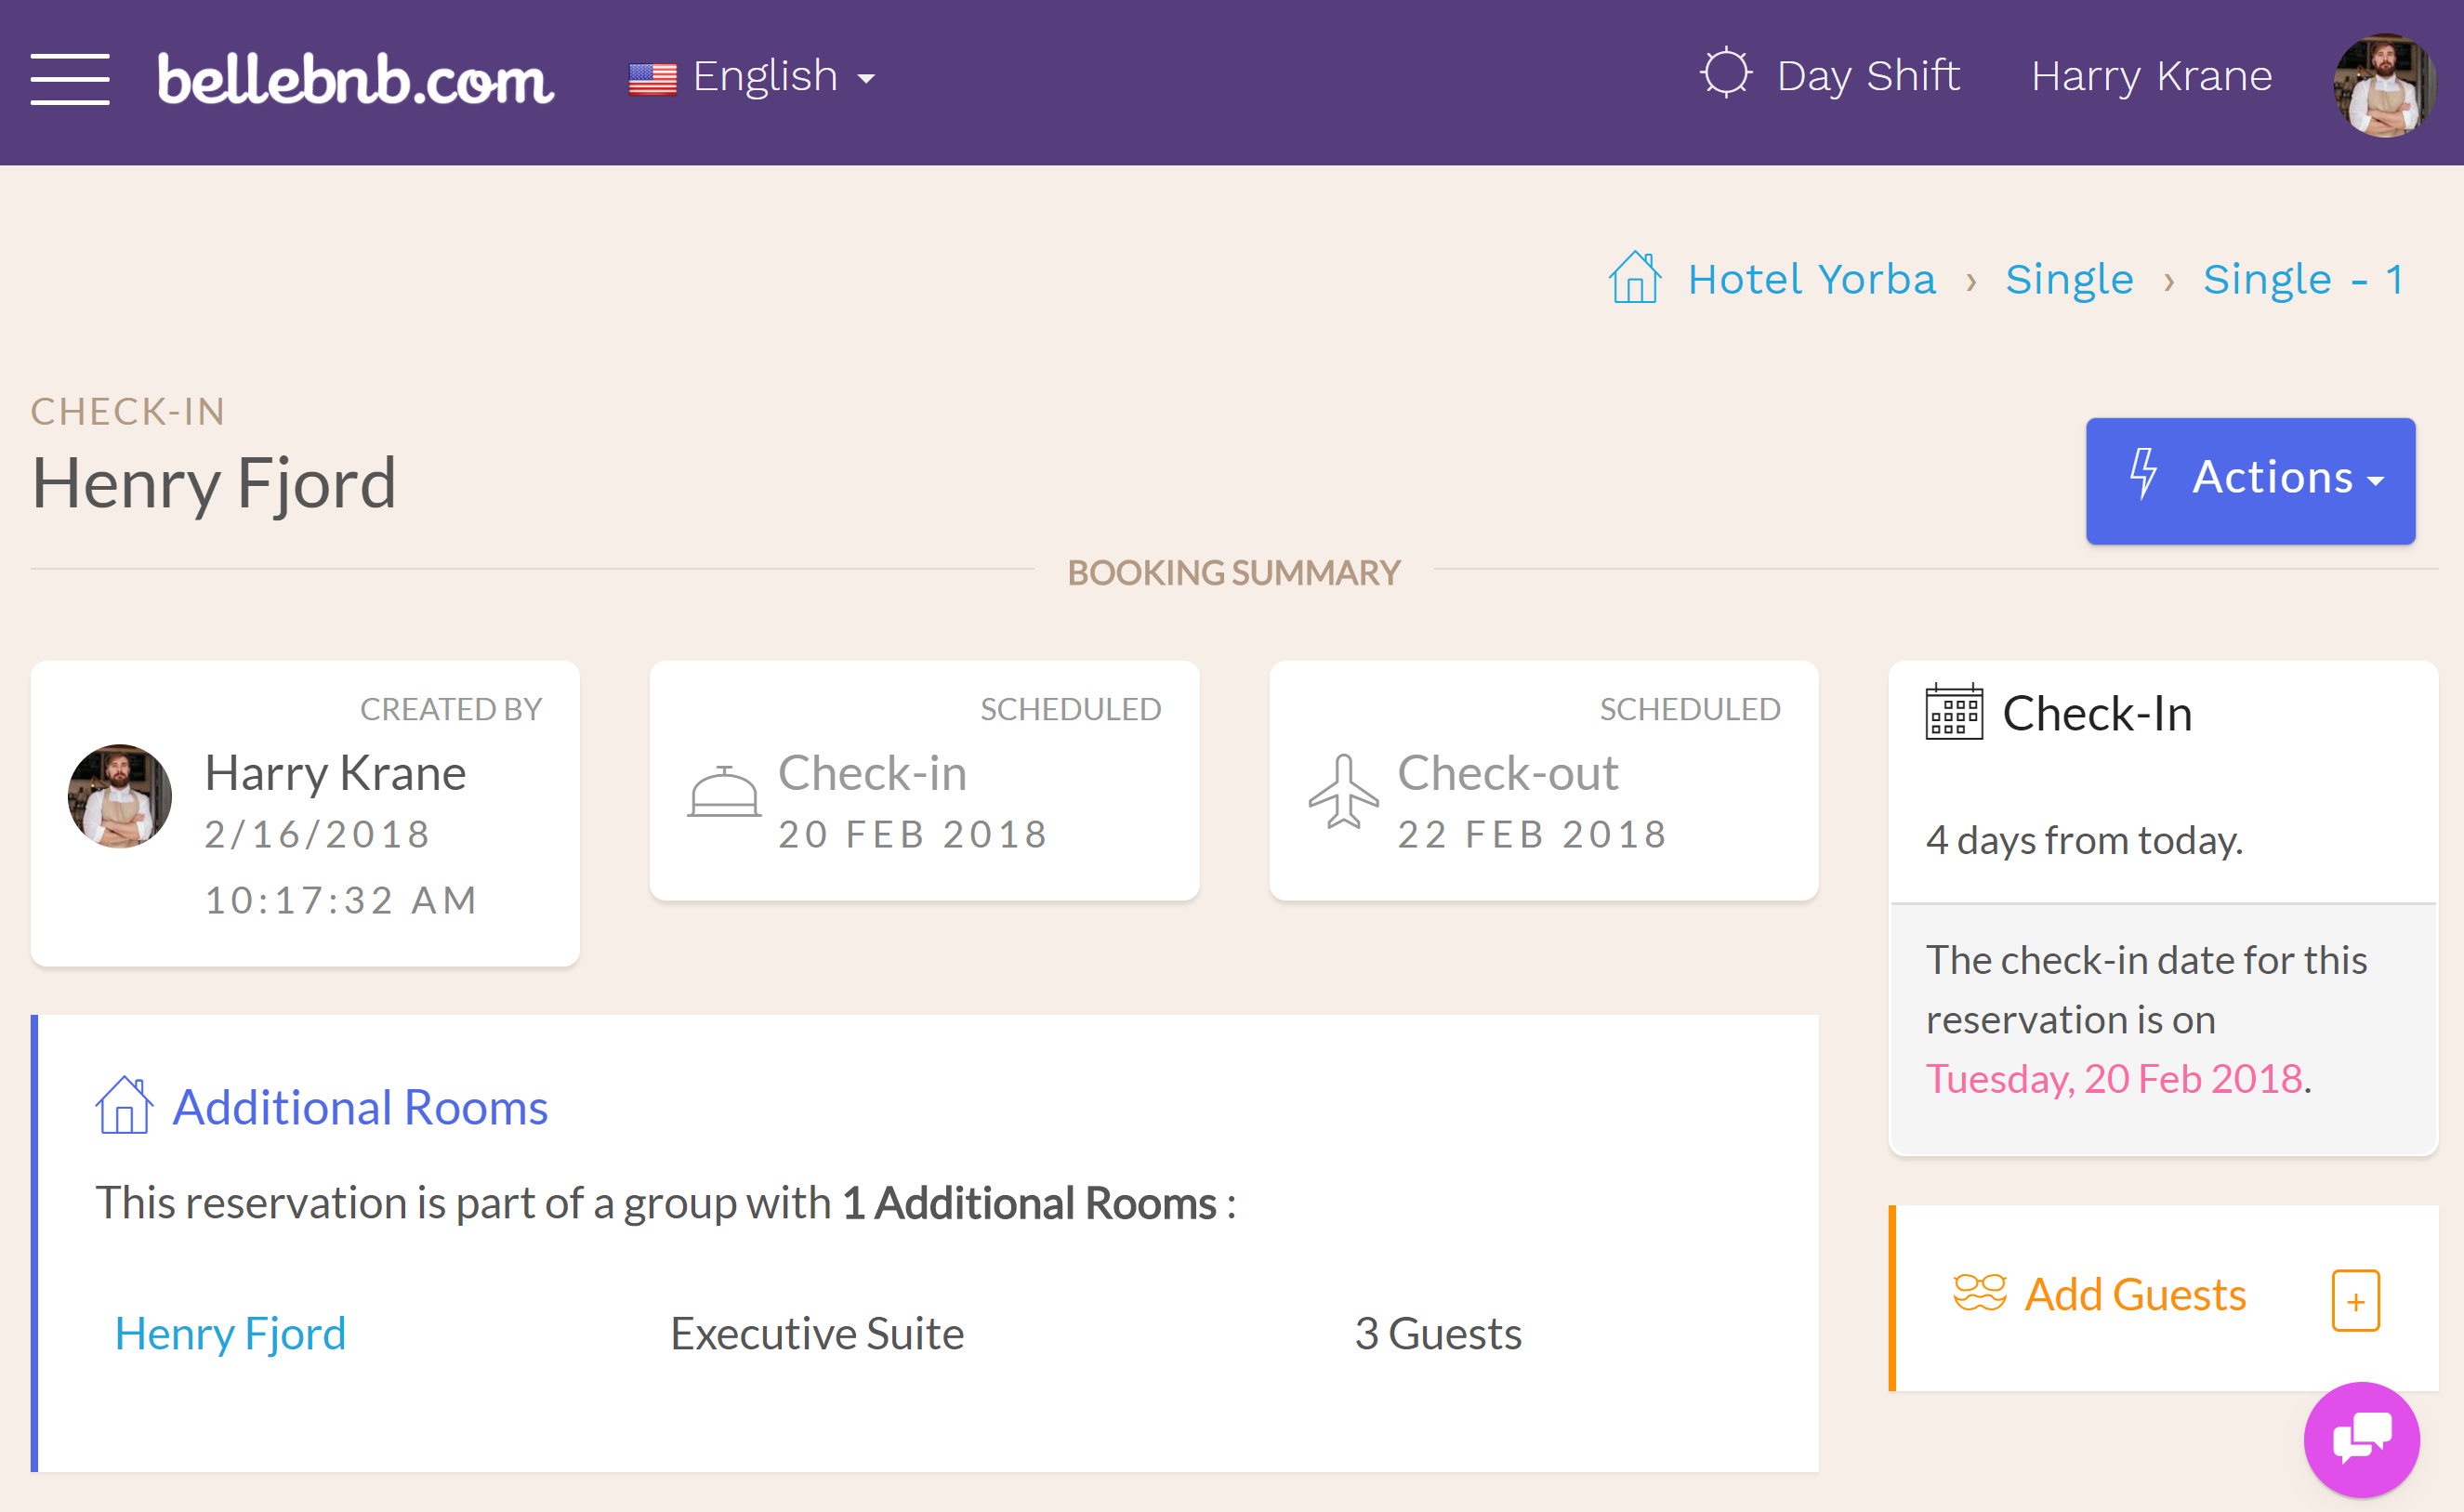 Hotel PMS Software You can see the additional rooms for the reservation in the 'Booking Summary' section of the reservation details for the main room. The additional rooms will link back to the main room for the group.